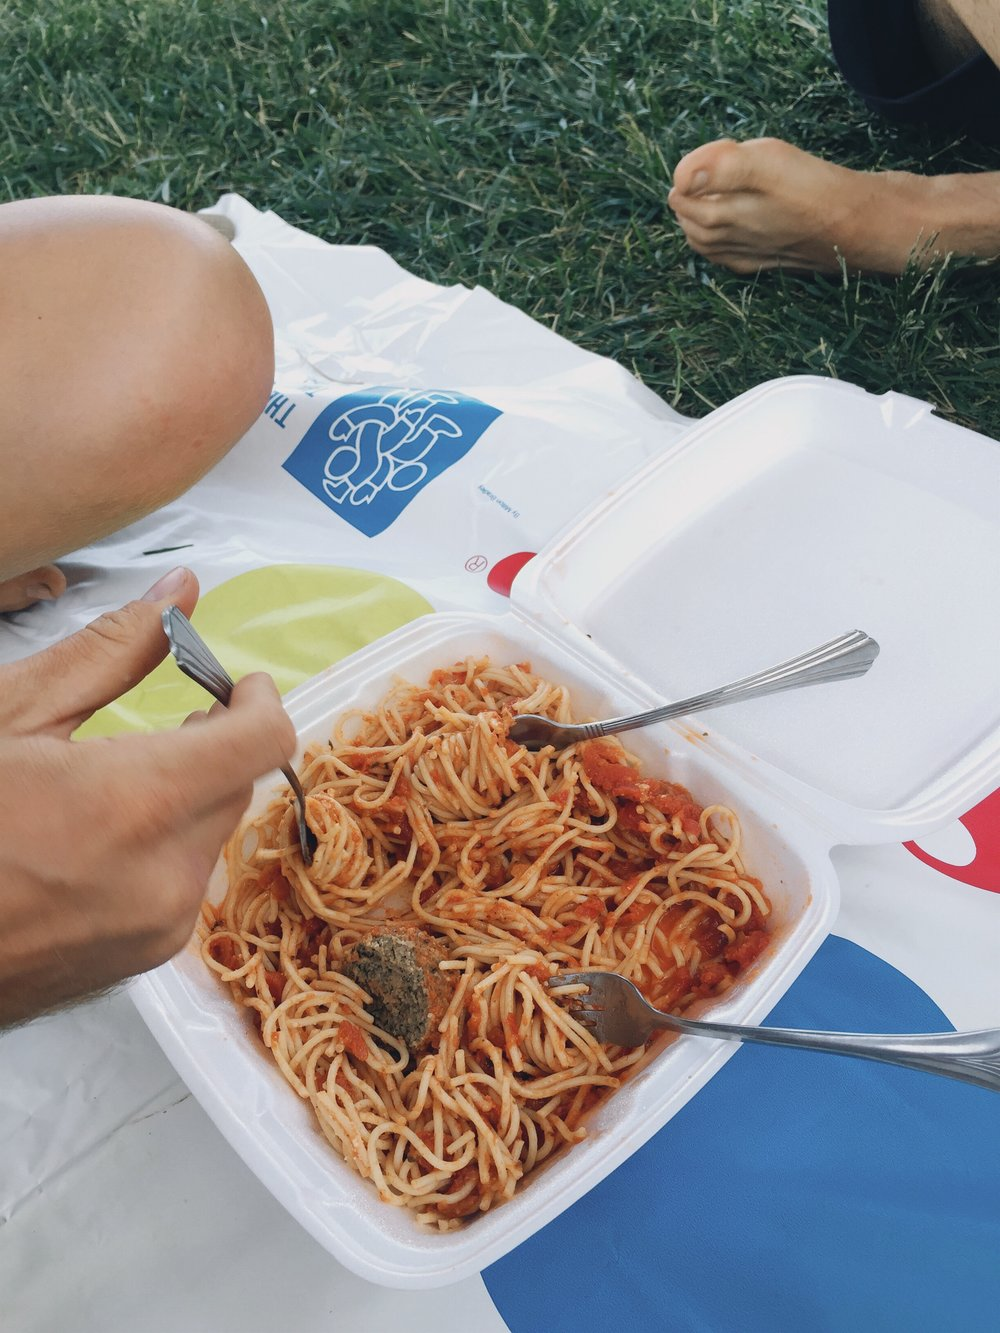 We wolfed down spaghetti at Hiker Heaven after a game of Twister.